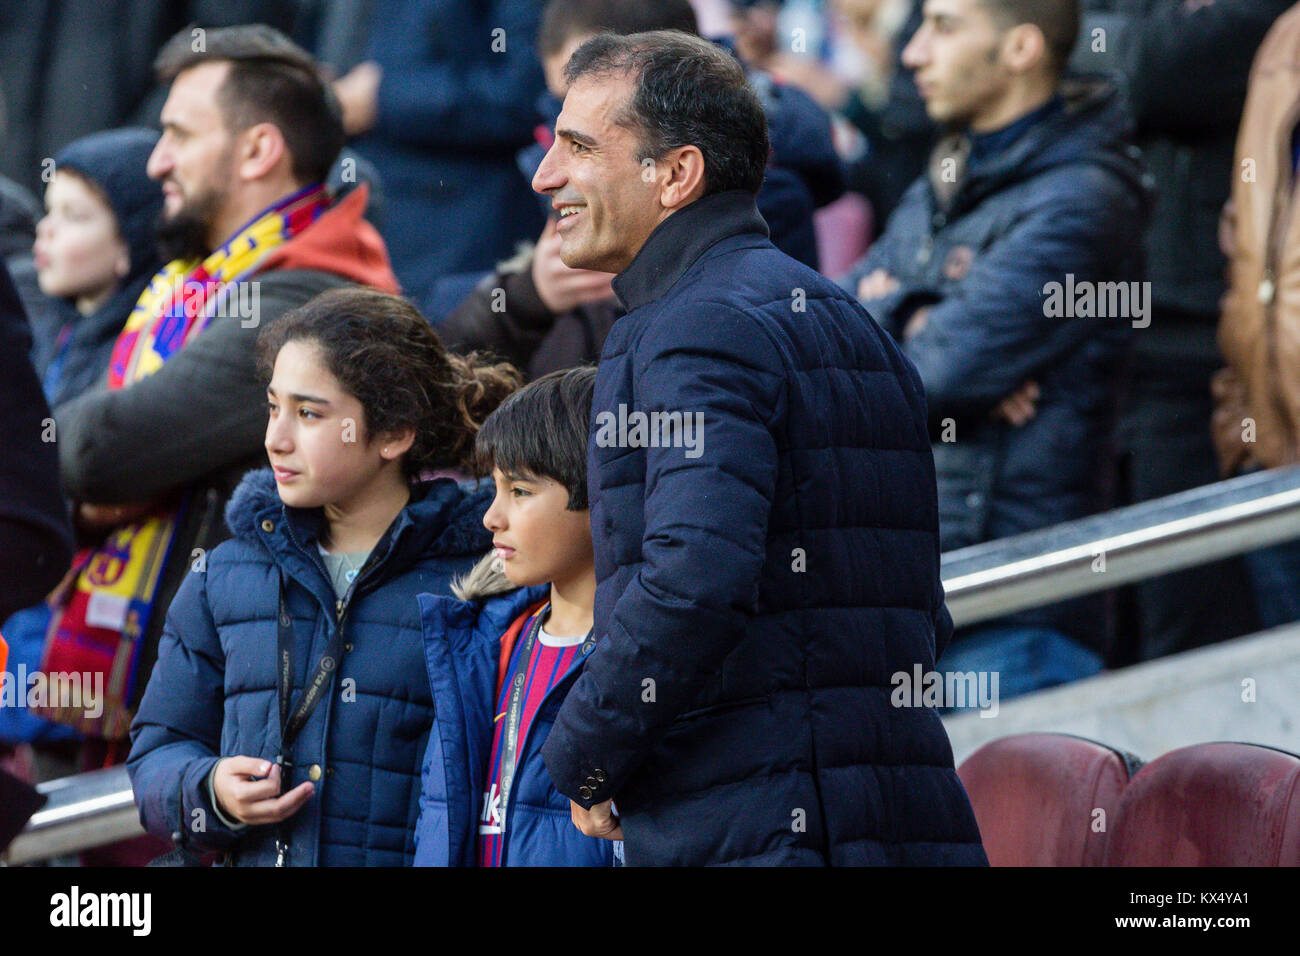 Barcelona, Spain. 07th Jan, 2018. Marc Gene, expilot of F! during the match between FC Barcelona against Levante - Stock Image